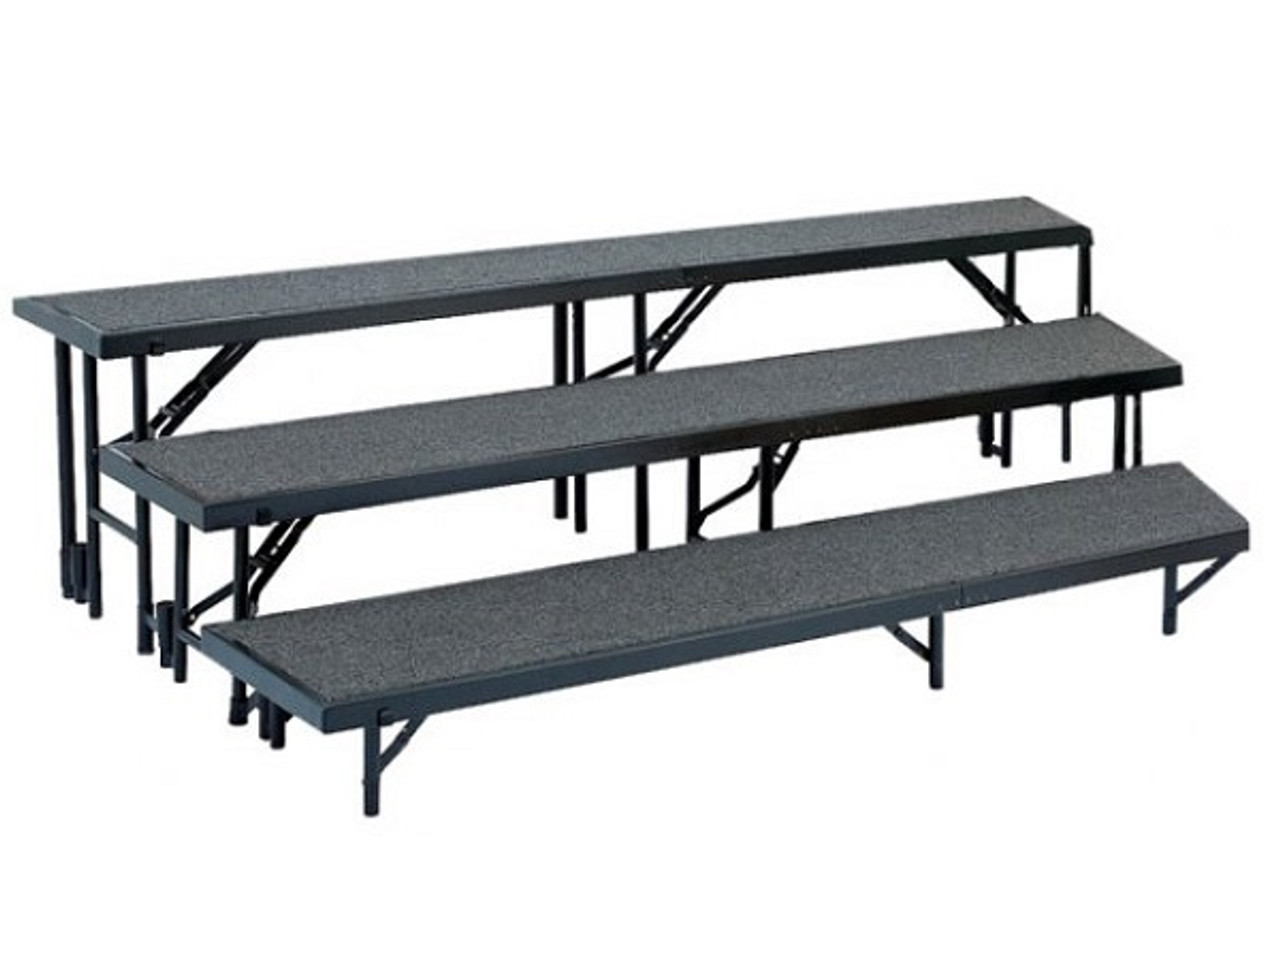 National Public Seating Rt3lc 3 Level Tapered Risers With Carpet L Affordable Risers National Public Seating Products